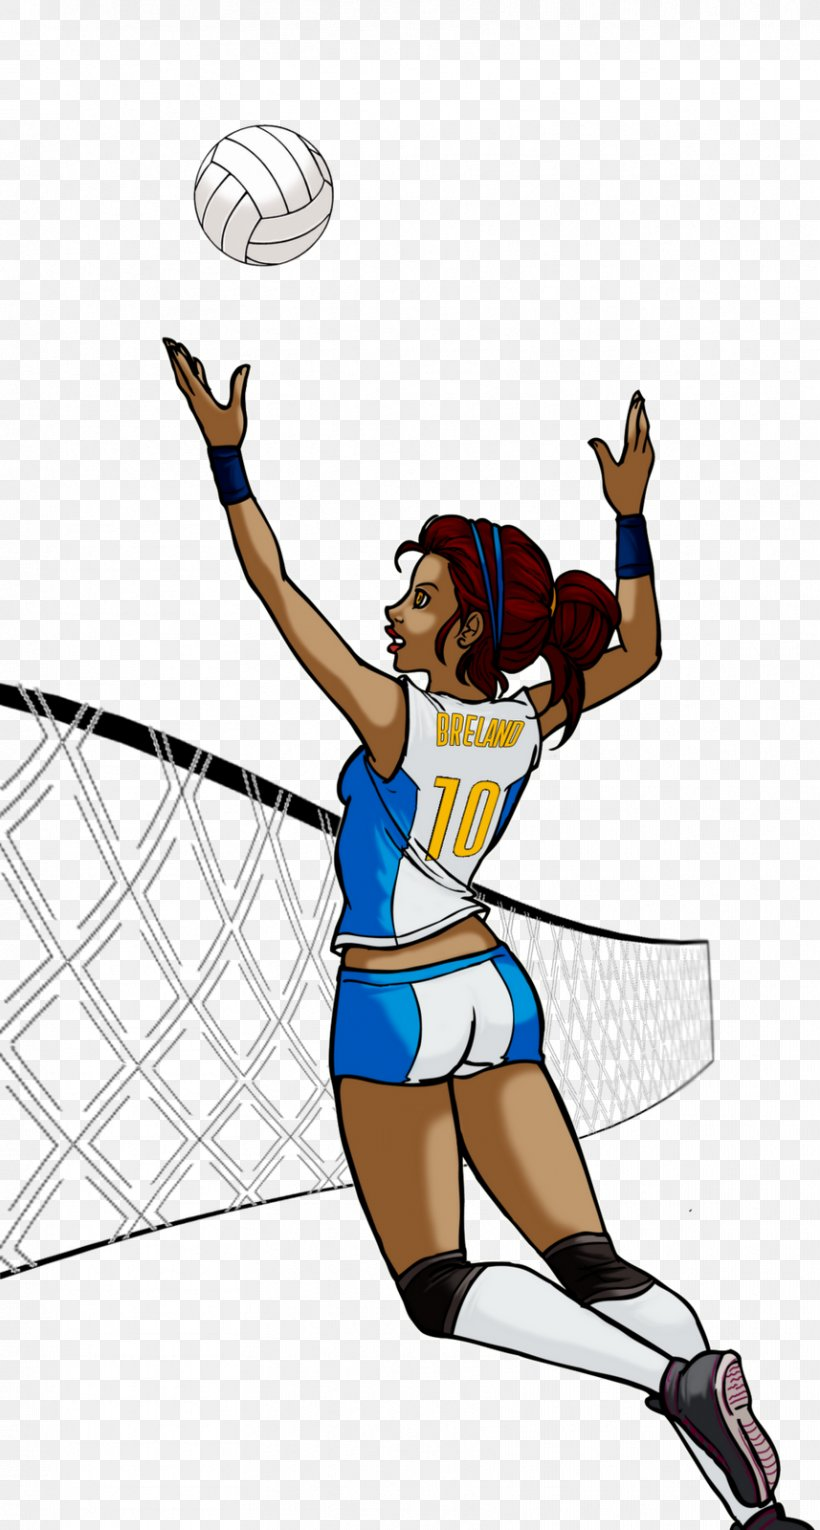 Team Sport Volleyball Clip Art Sports Png 857x1600px Team Sport Ball Cartoon Clothing Competition Download Free